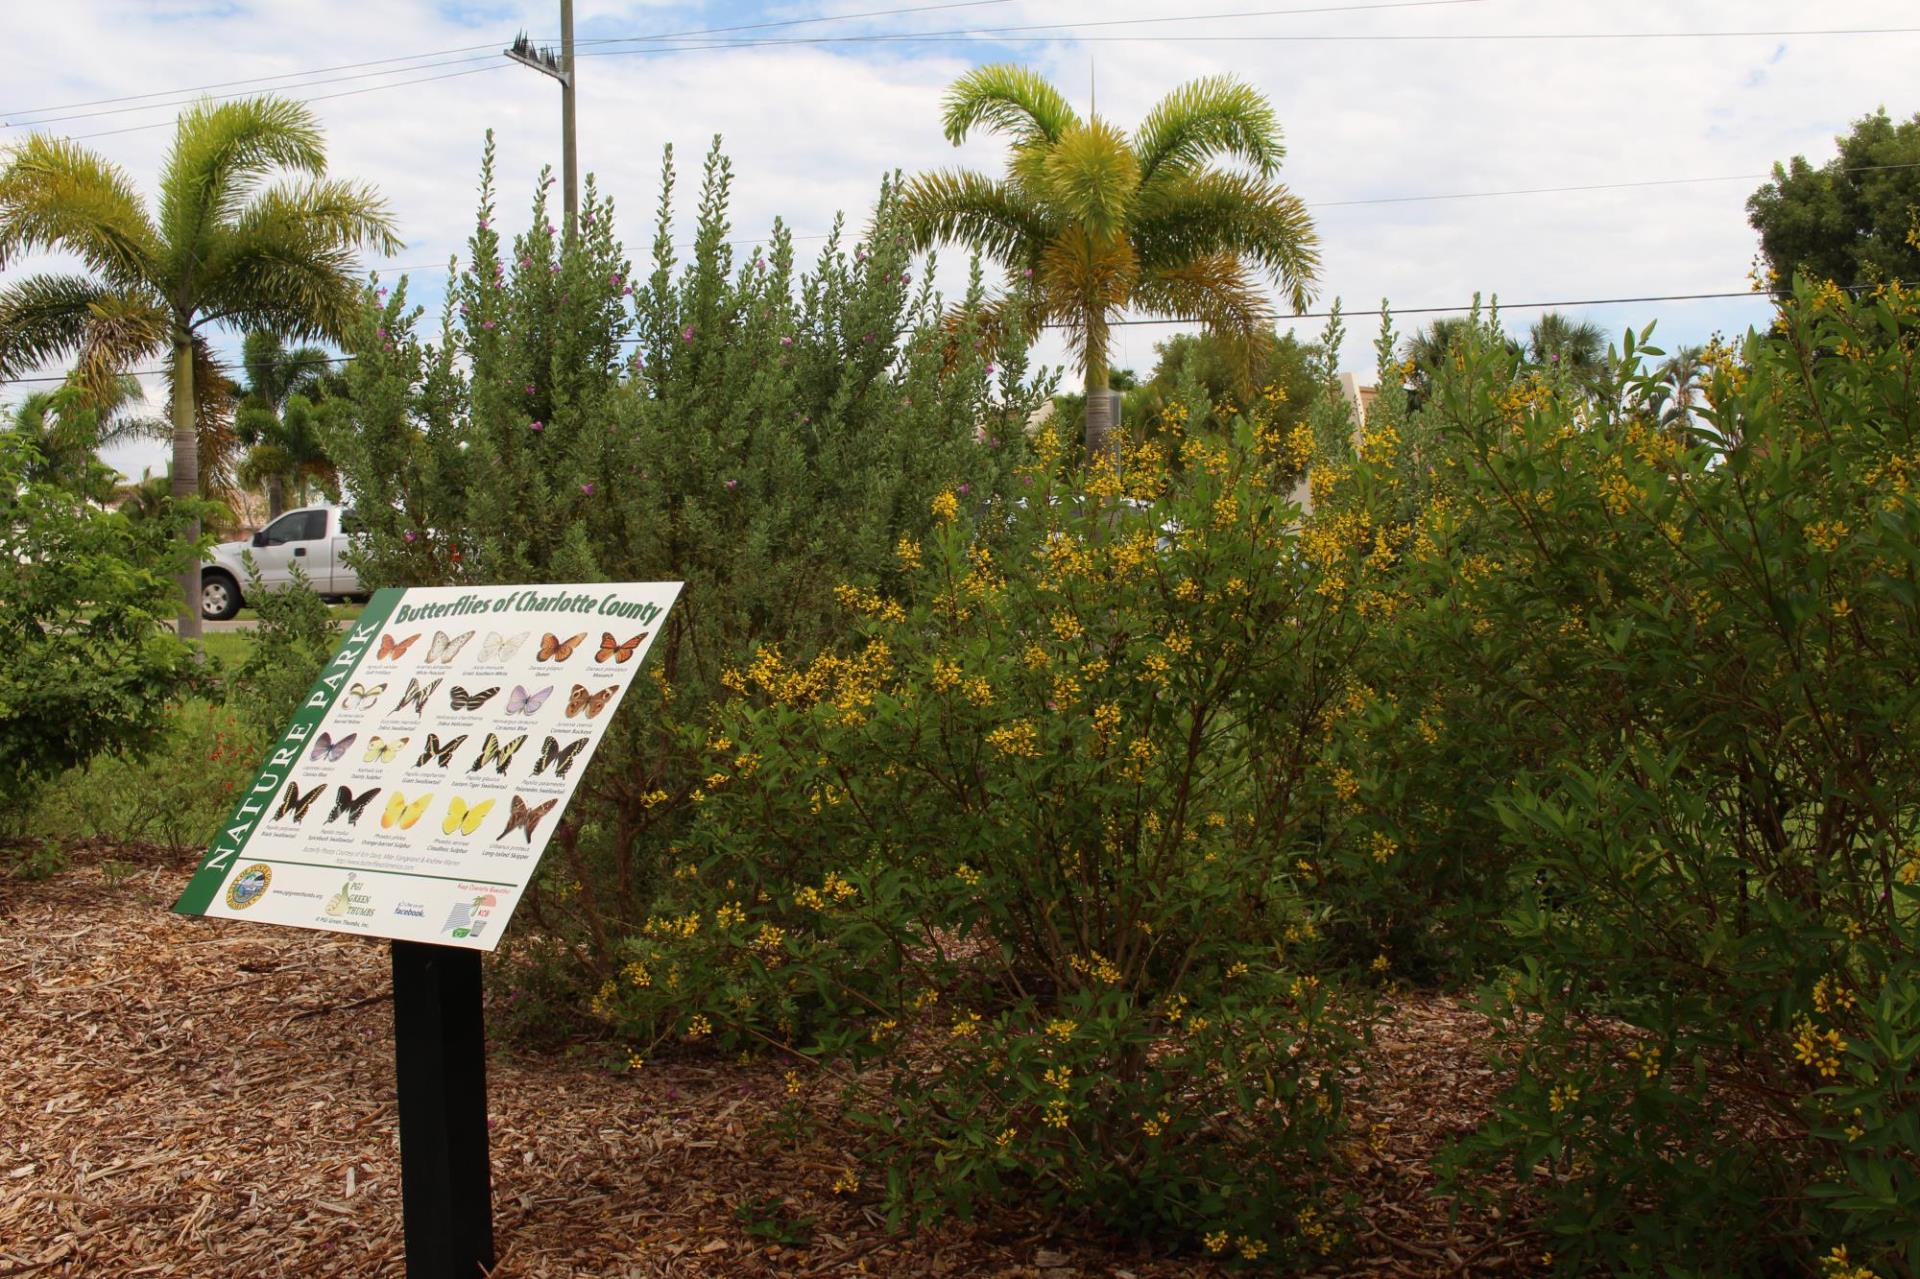 nature park with sign of butterflies of charlotte county